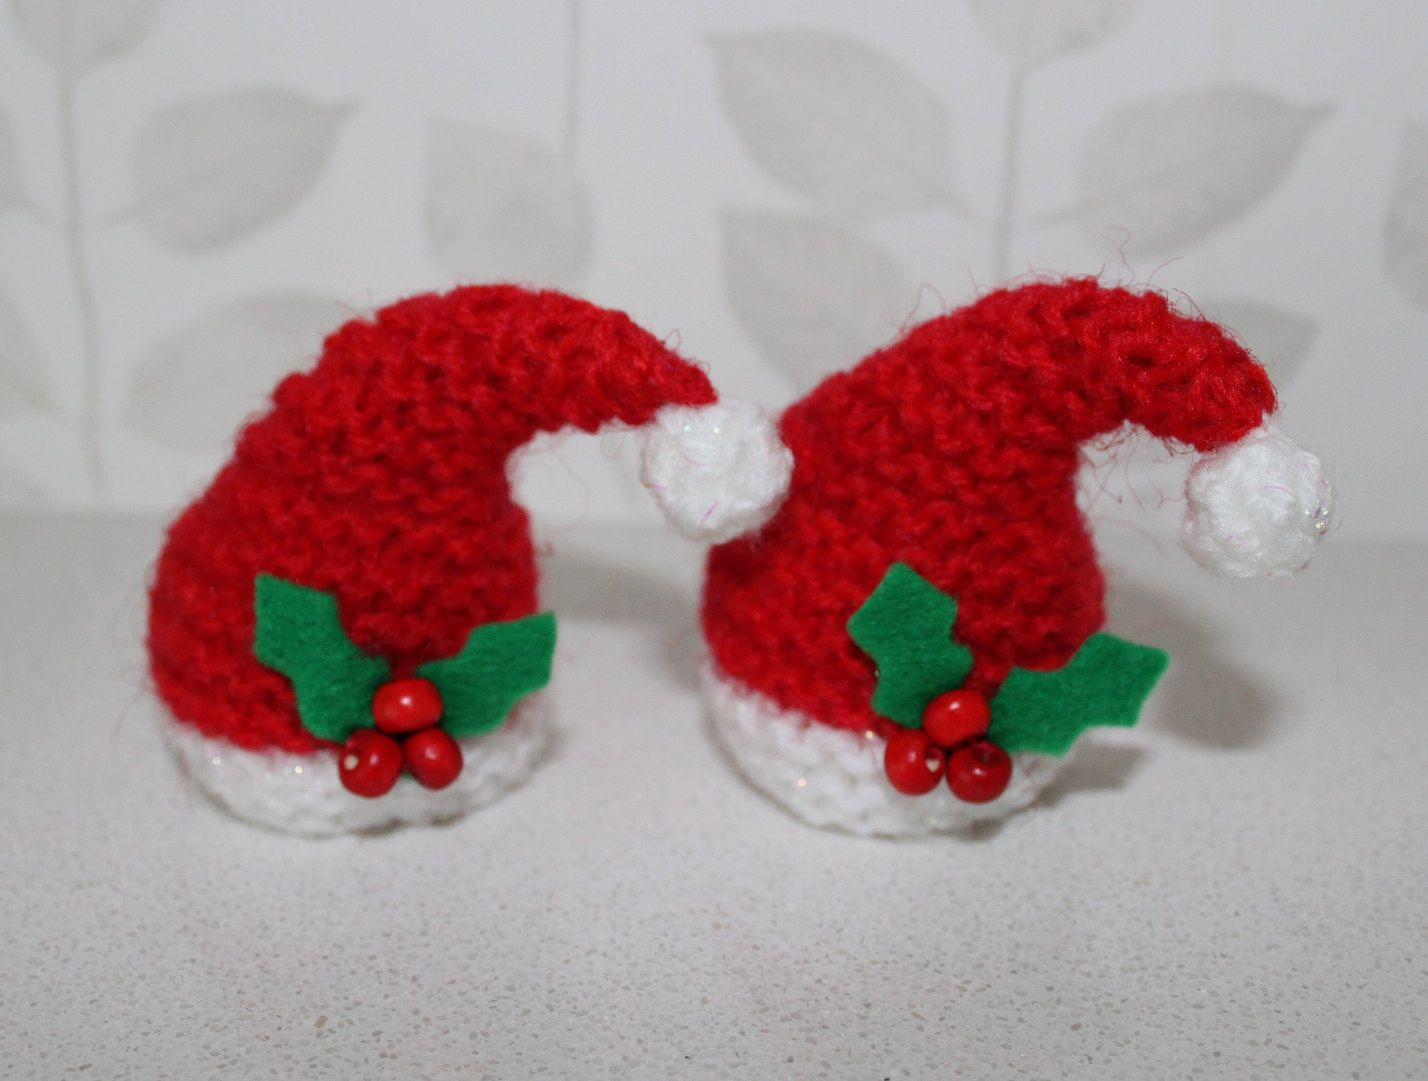 KNITTING PATTERN /& WOOL FOR 2 CHRISTMAS TREE FERRERO CHOCOLATE COVERS